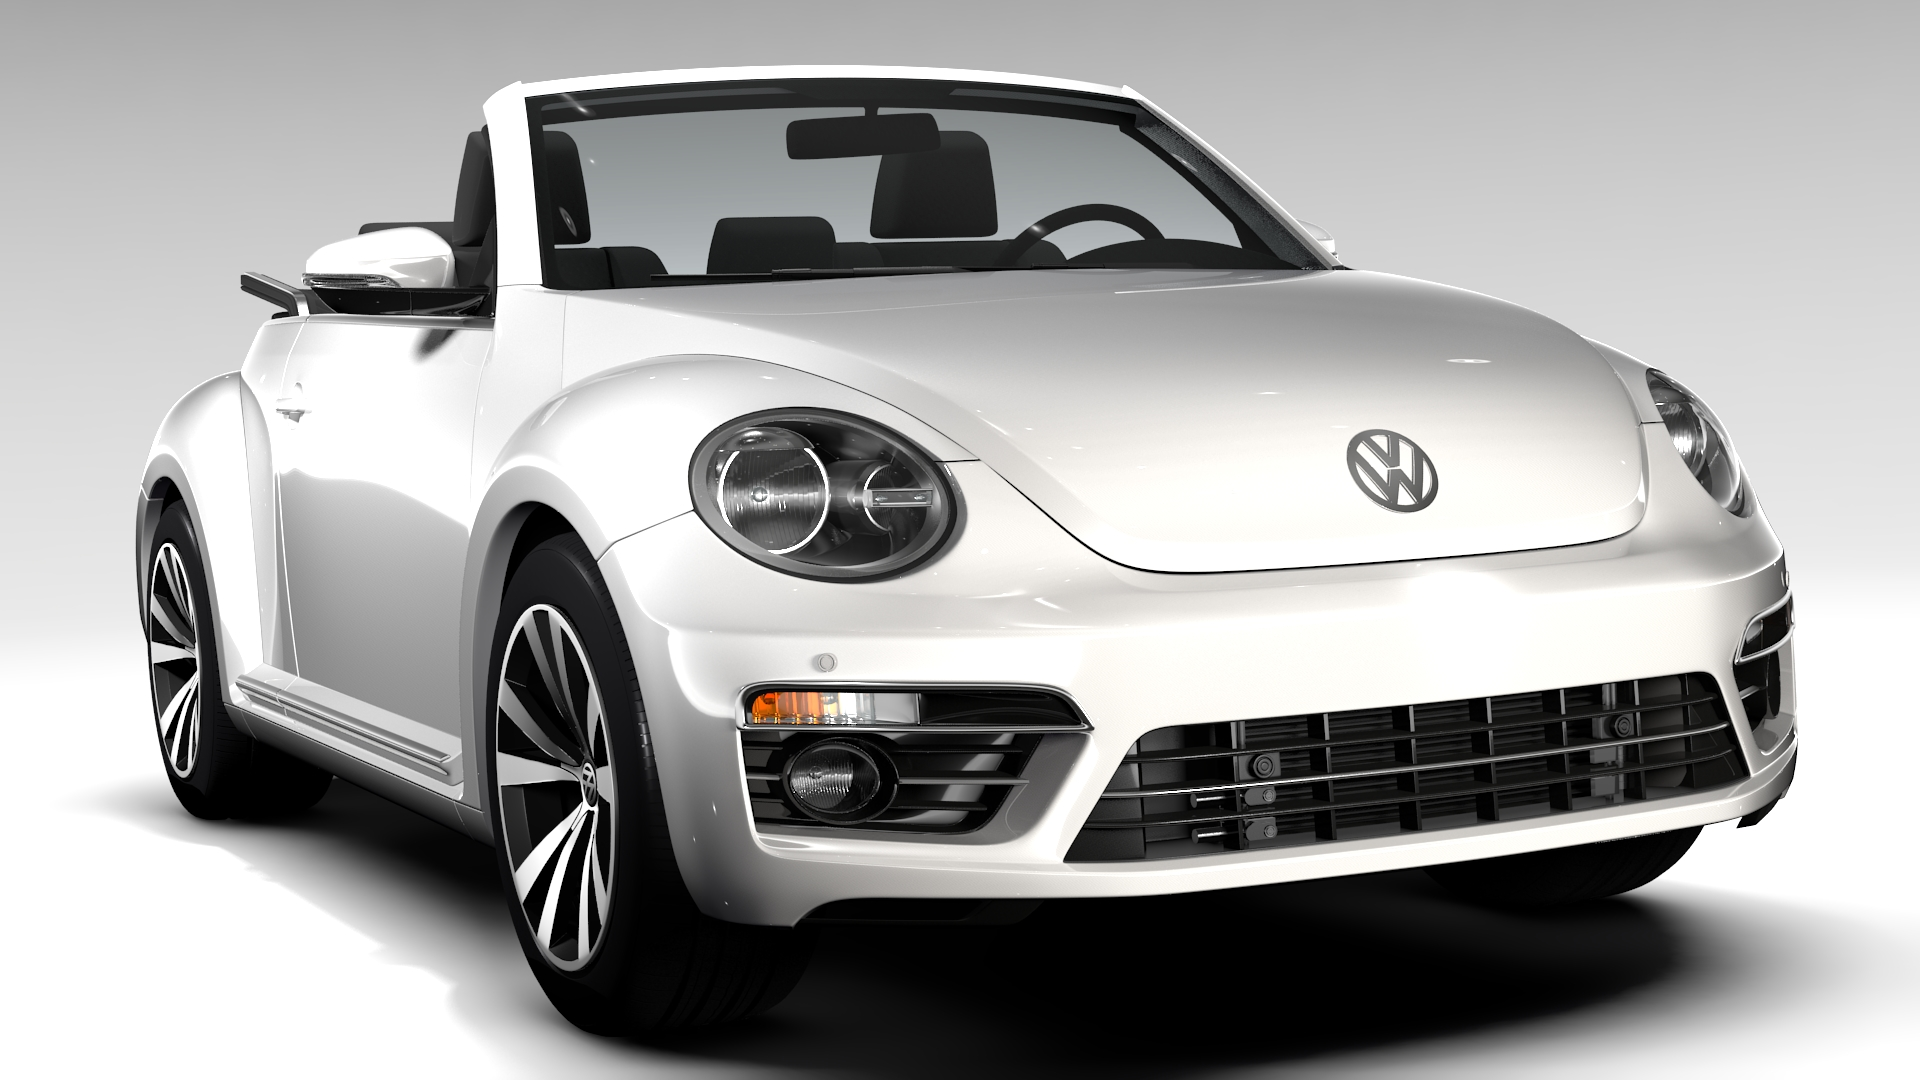 vw beetle cabriolet 2017 3d model buy vw beetle. Black Bedroom Furniture Sets. Home Design Ideas